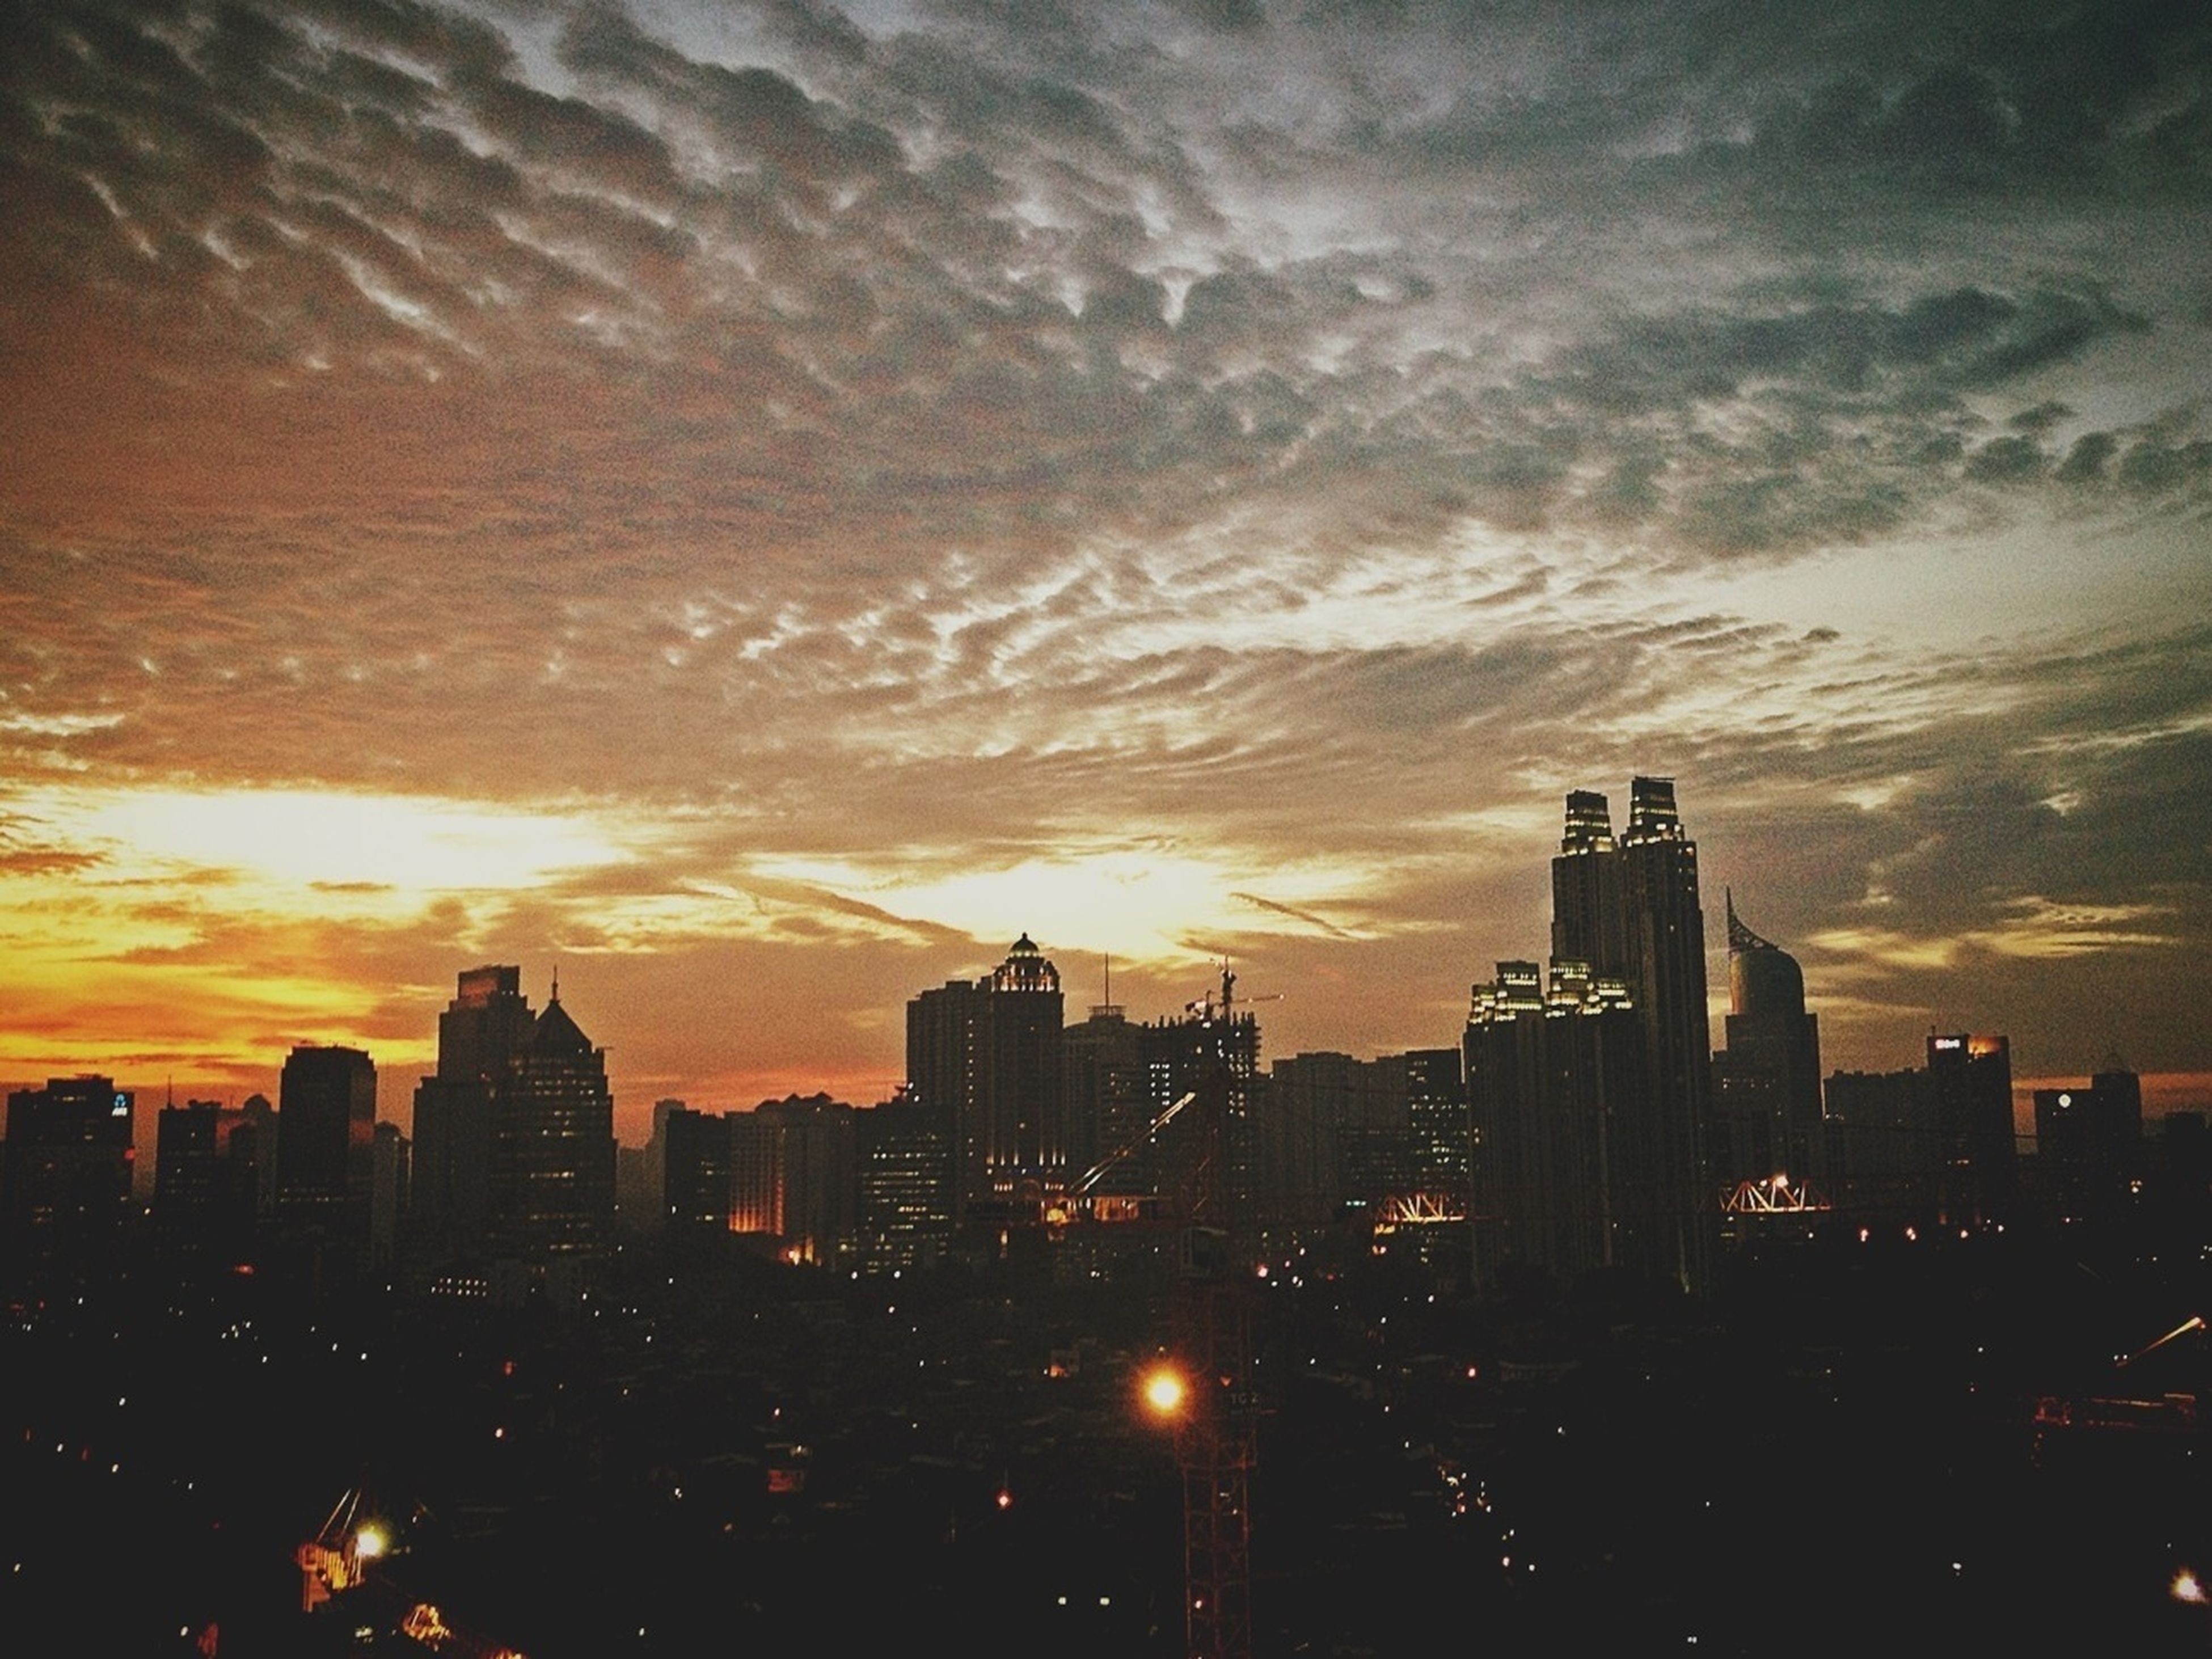 building exterior, city, sunset, architecture, cityscape, built structure, skyscraper, sky, silhouette, orange color, urban skyline, cloud - sky, tall - high, city life, tower, office building, residential building, crowded, modern, residential district